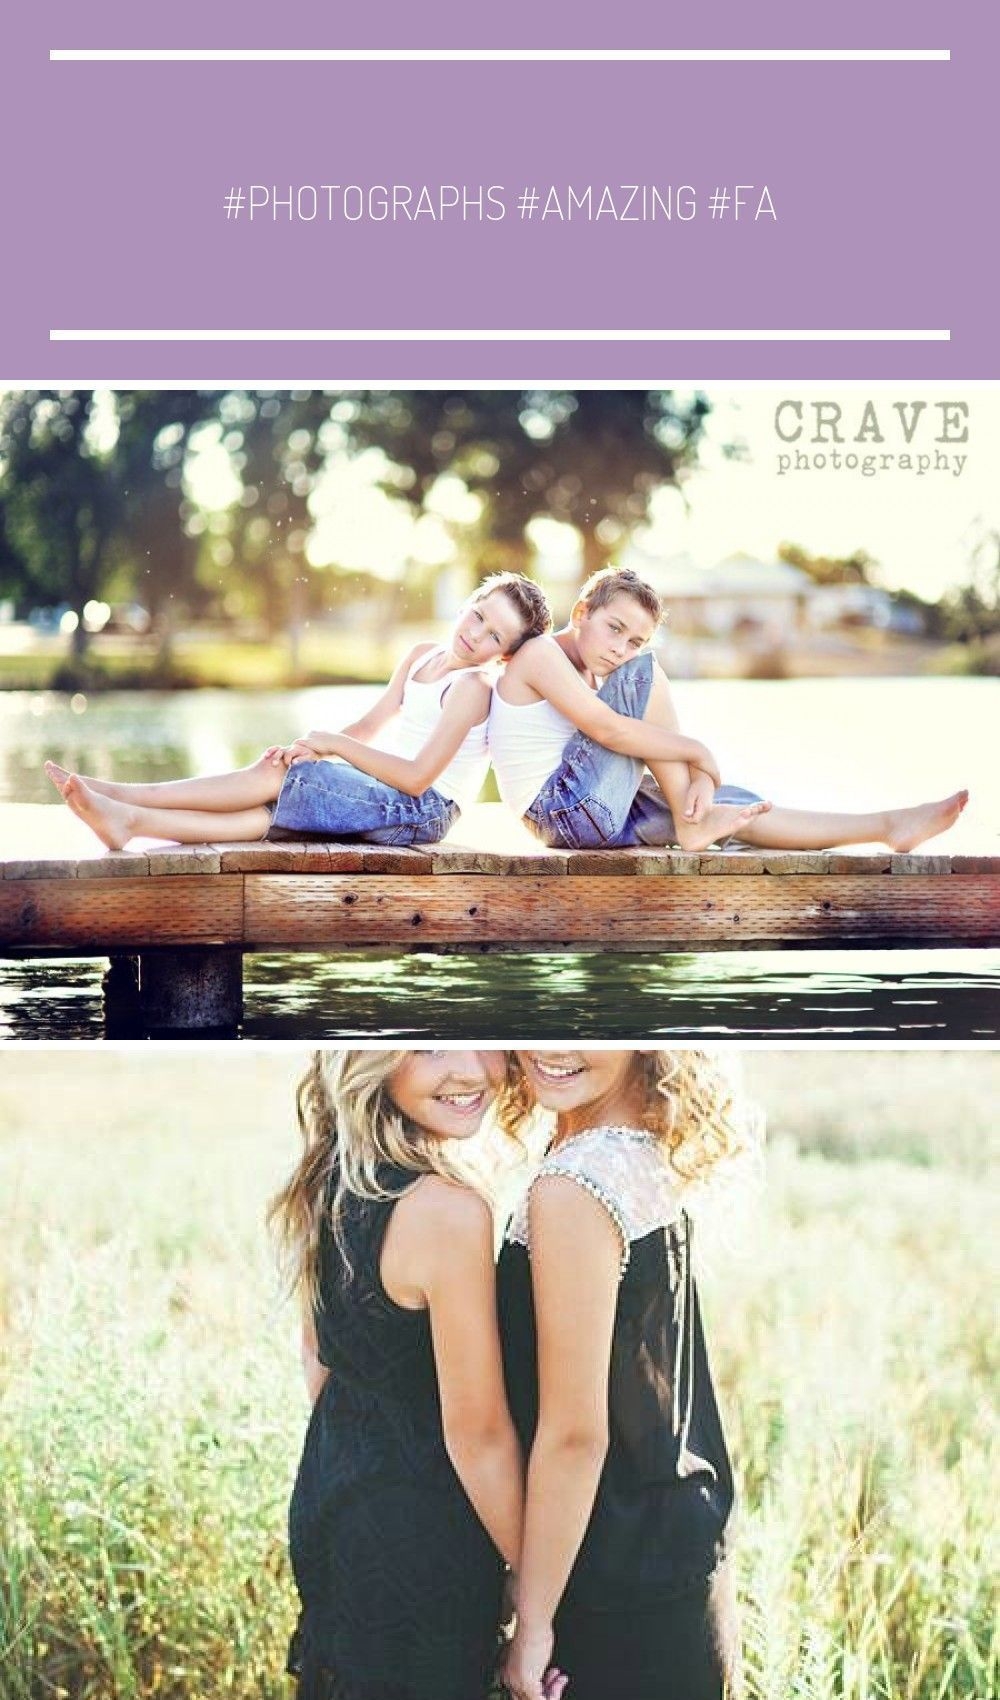 I want a family and live near the water Amazing photographs LOVE this I want a family and live near the water Amazing photographs LOVE this photography poses four family...